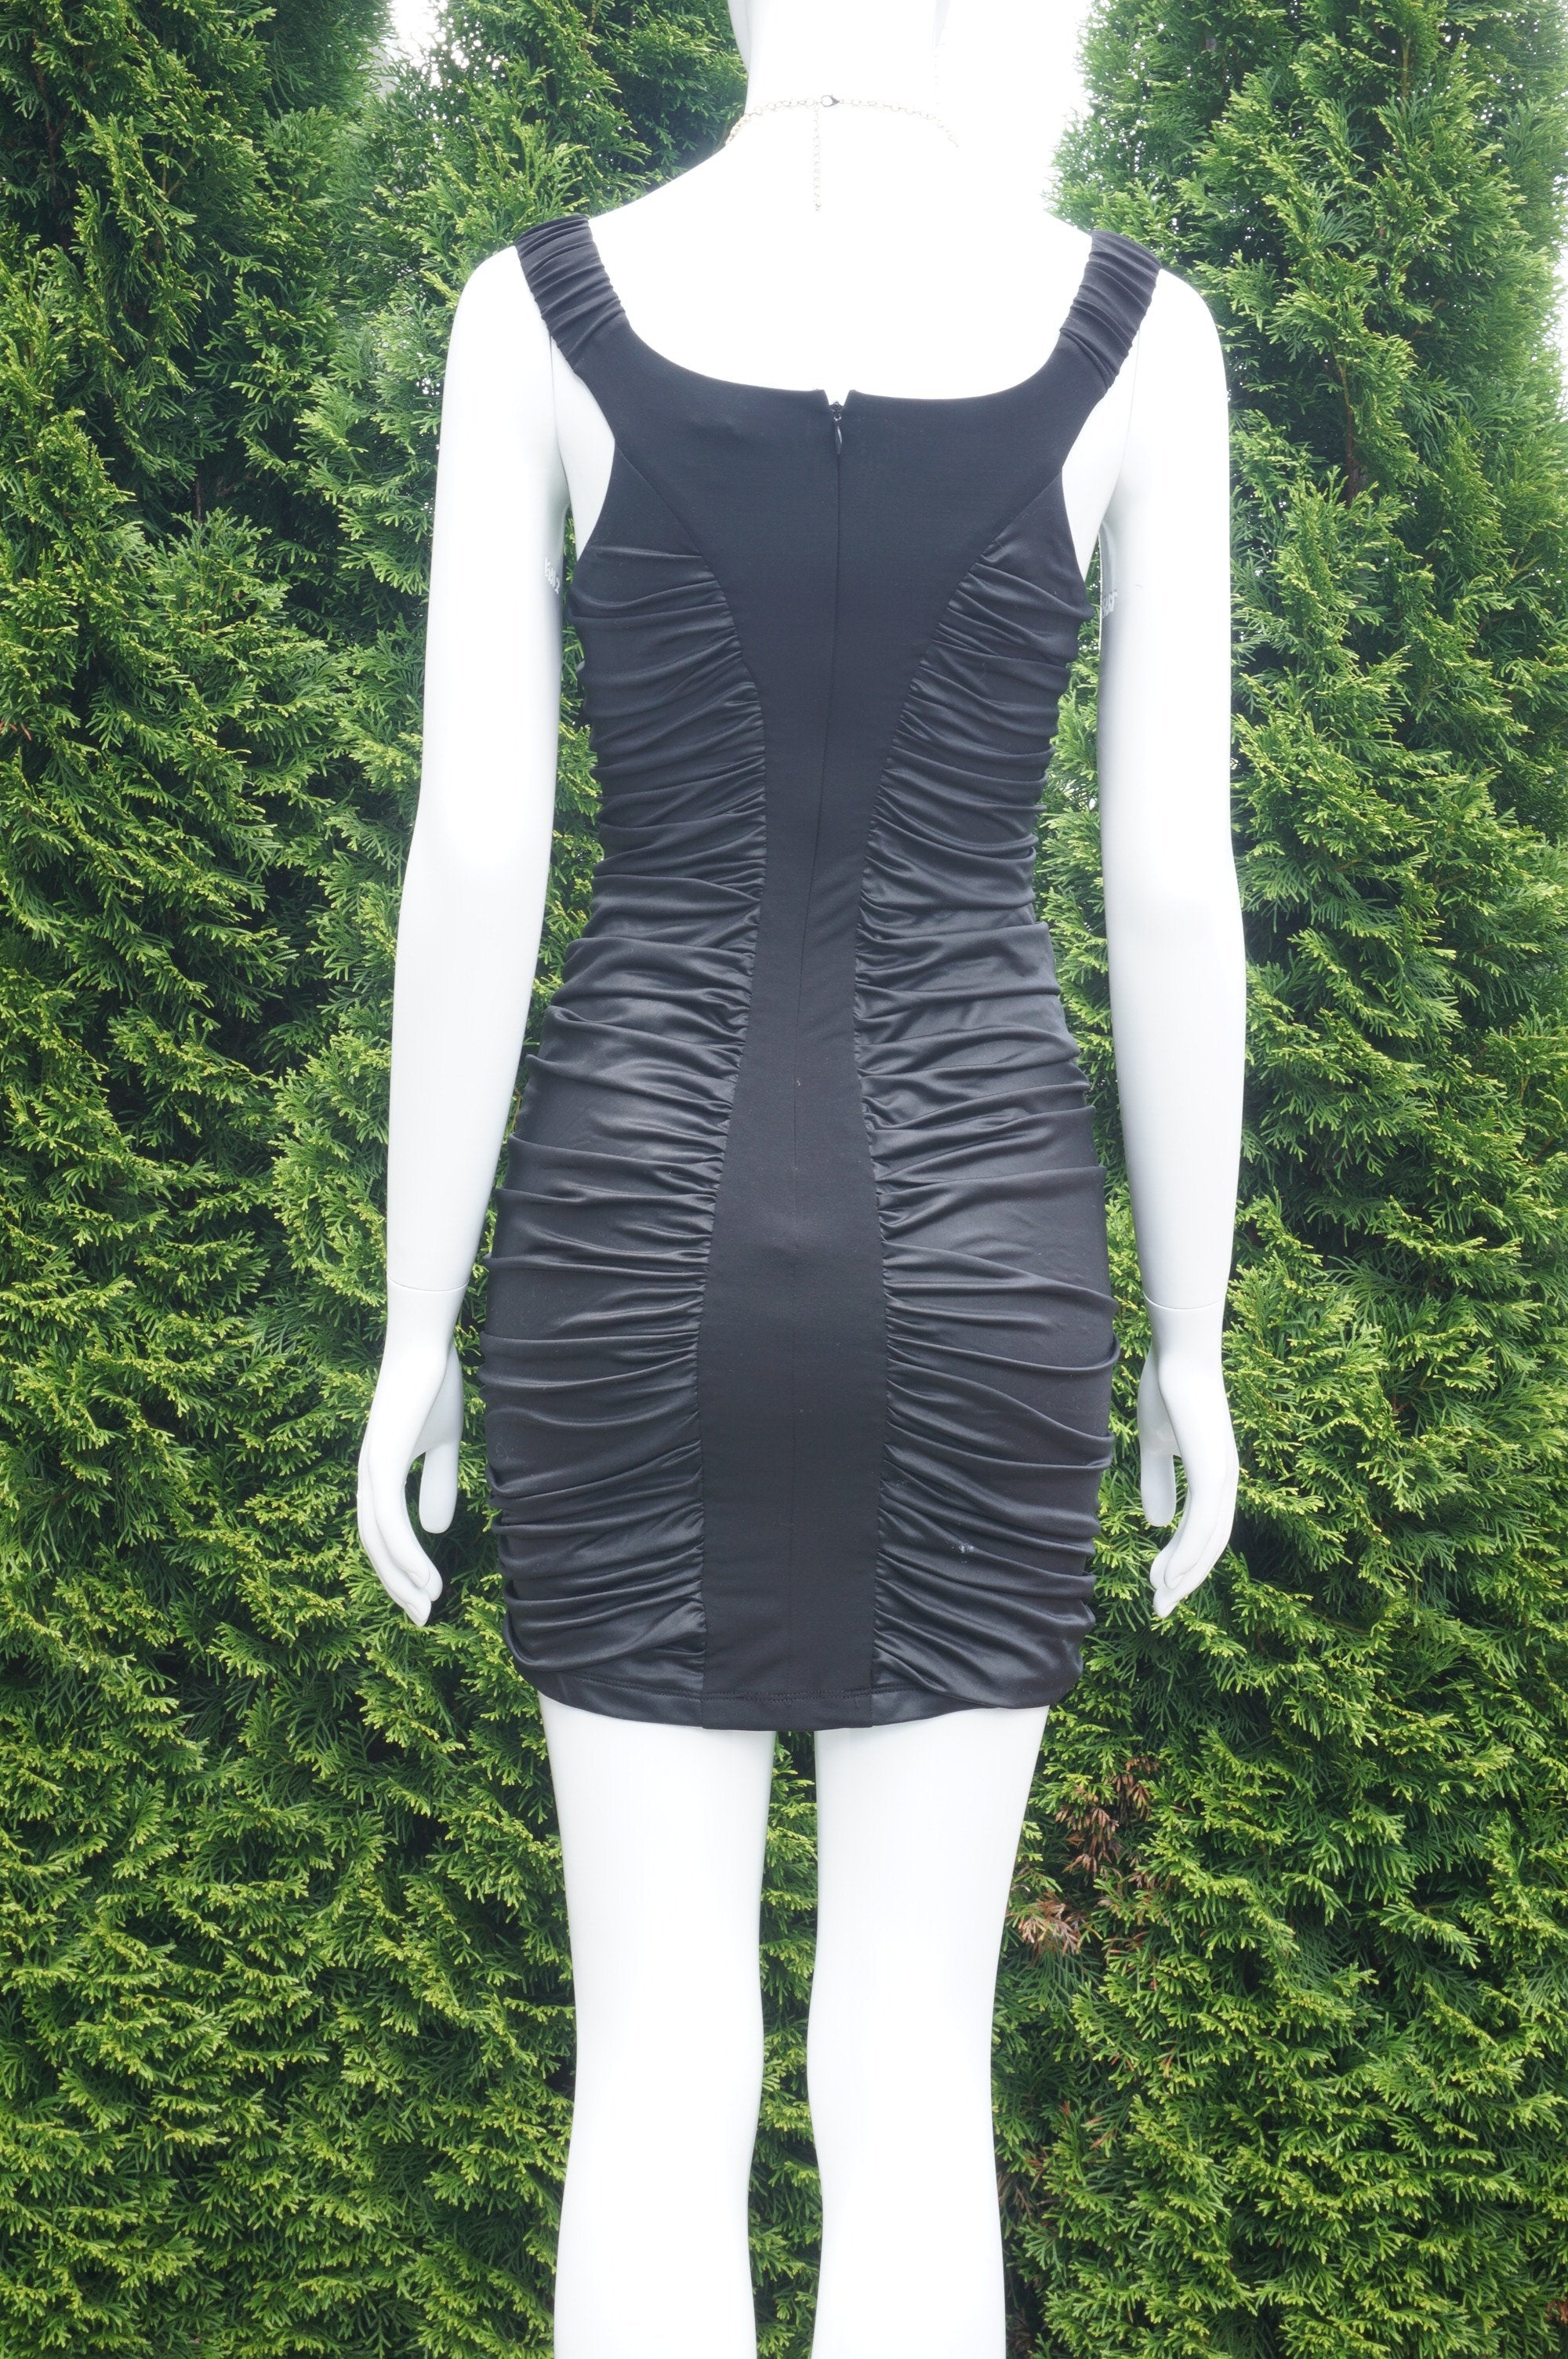 Bebe Sleeveless Stretchy Black Mini Dress, Very Stretchy Dress. Bust 30 inches, waist 26 inches, length 30 inches., Black, 94% Polyester, 6% Spandex. Lining: 100% Polyester, women's Dresses & Rompers, women's Black Dresses & Rompers, Bebe women's Dresses & Rompers, mini dress, bodycon dress, black mini dress